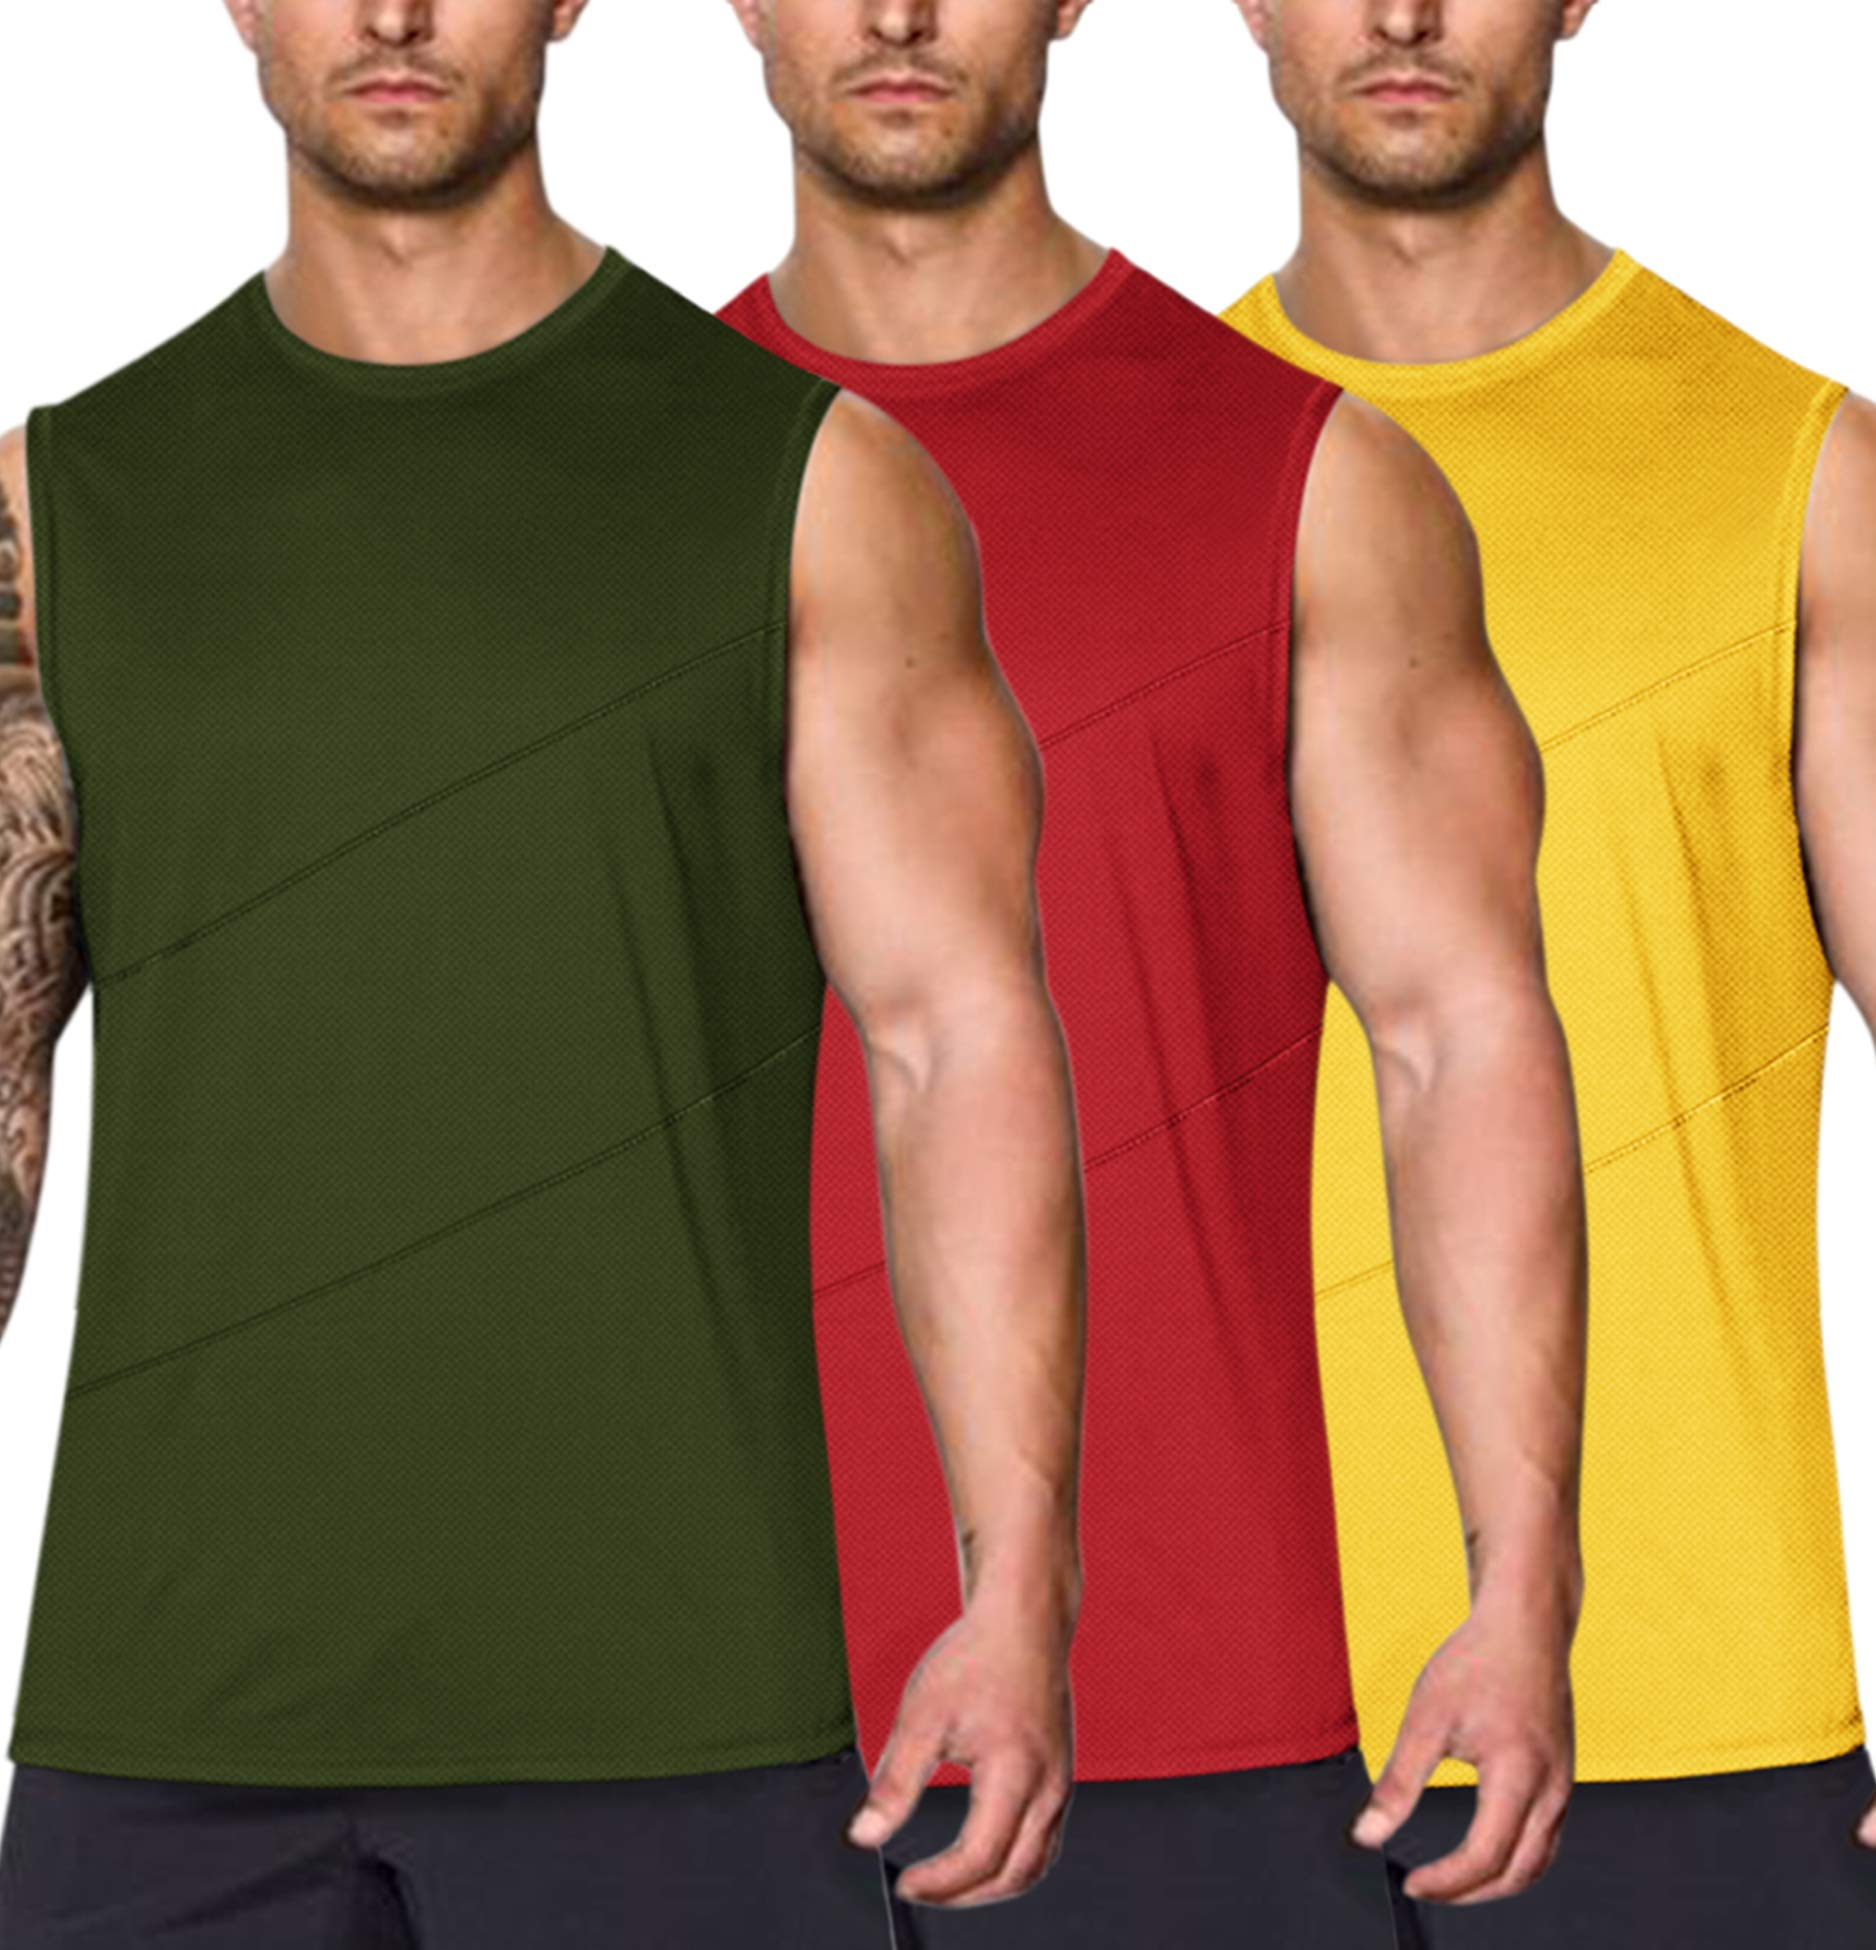 COOFANDY Men's 3 Pack Dry Fit Y-Back Workout Tank Tops Athletic Mesh Sleeveless Gym Shirts Muscle Fitness Shirts